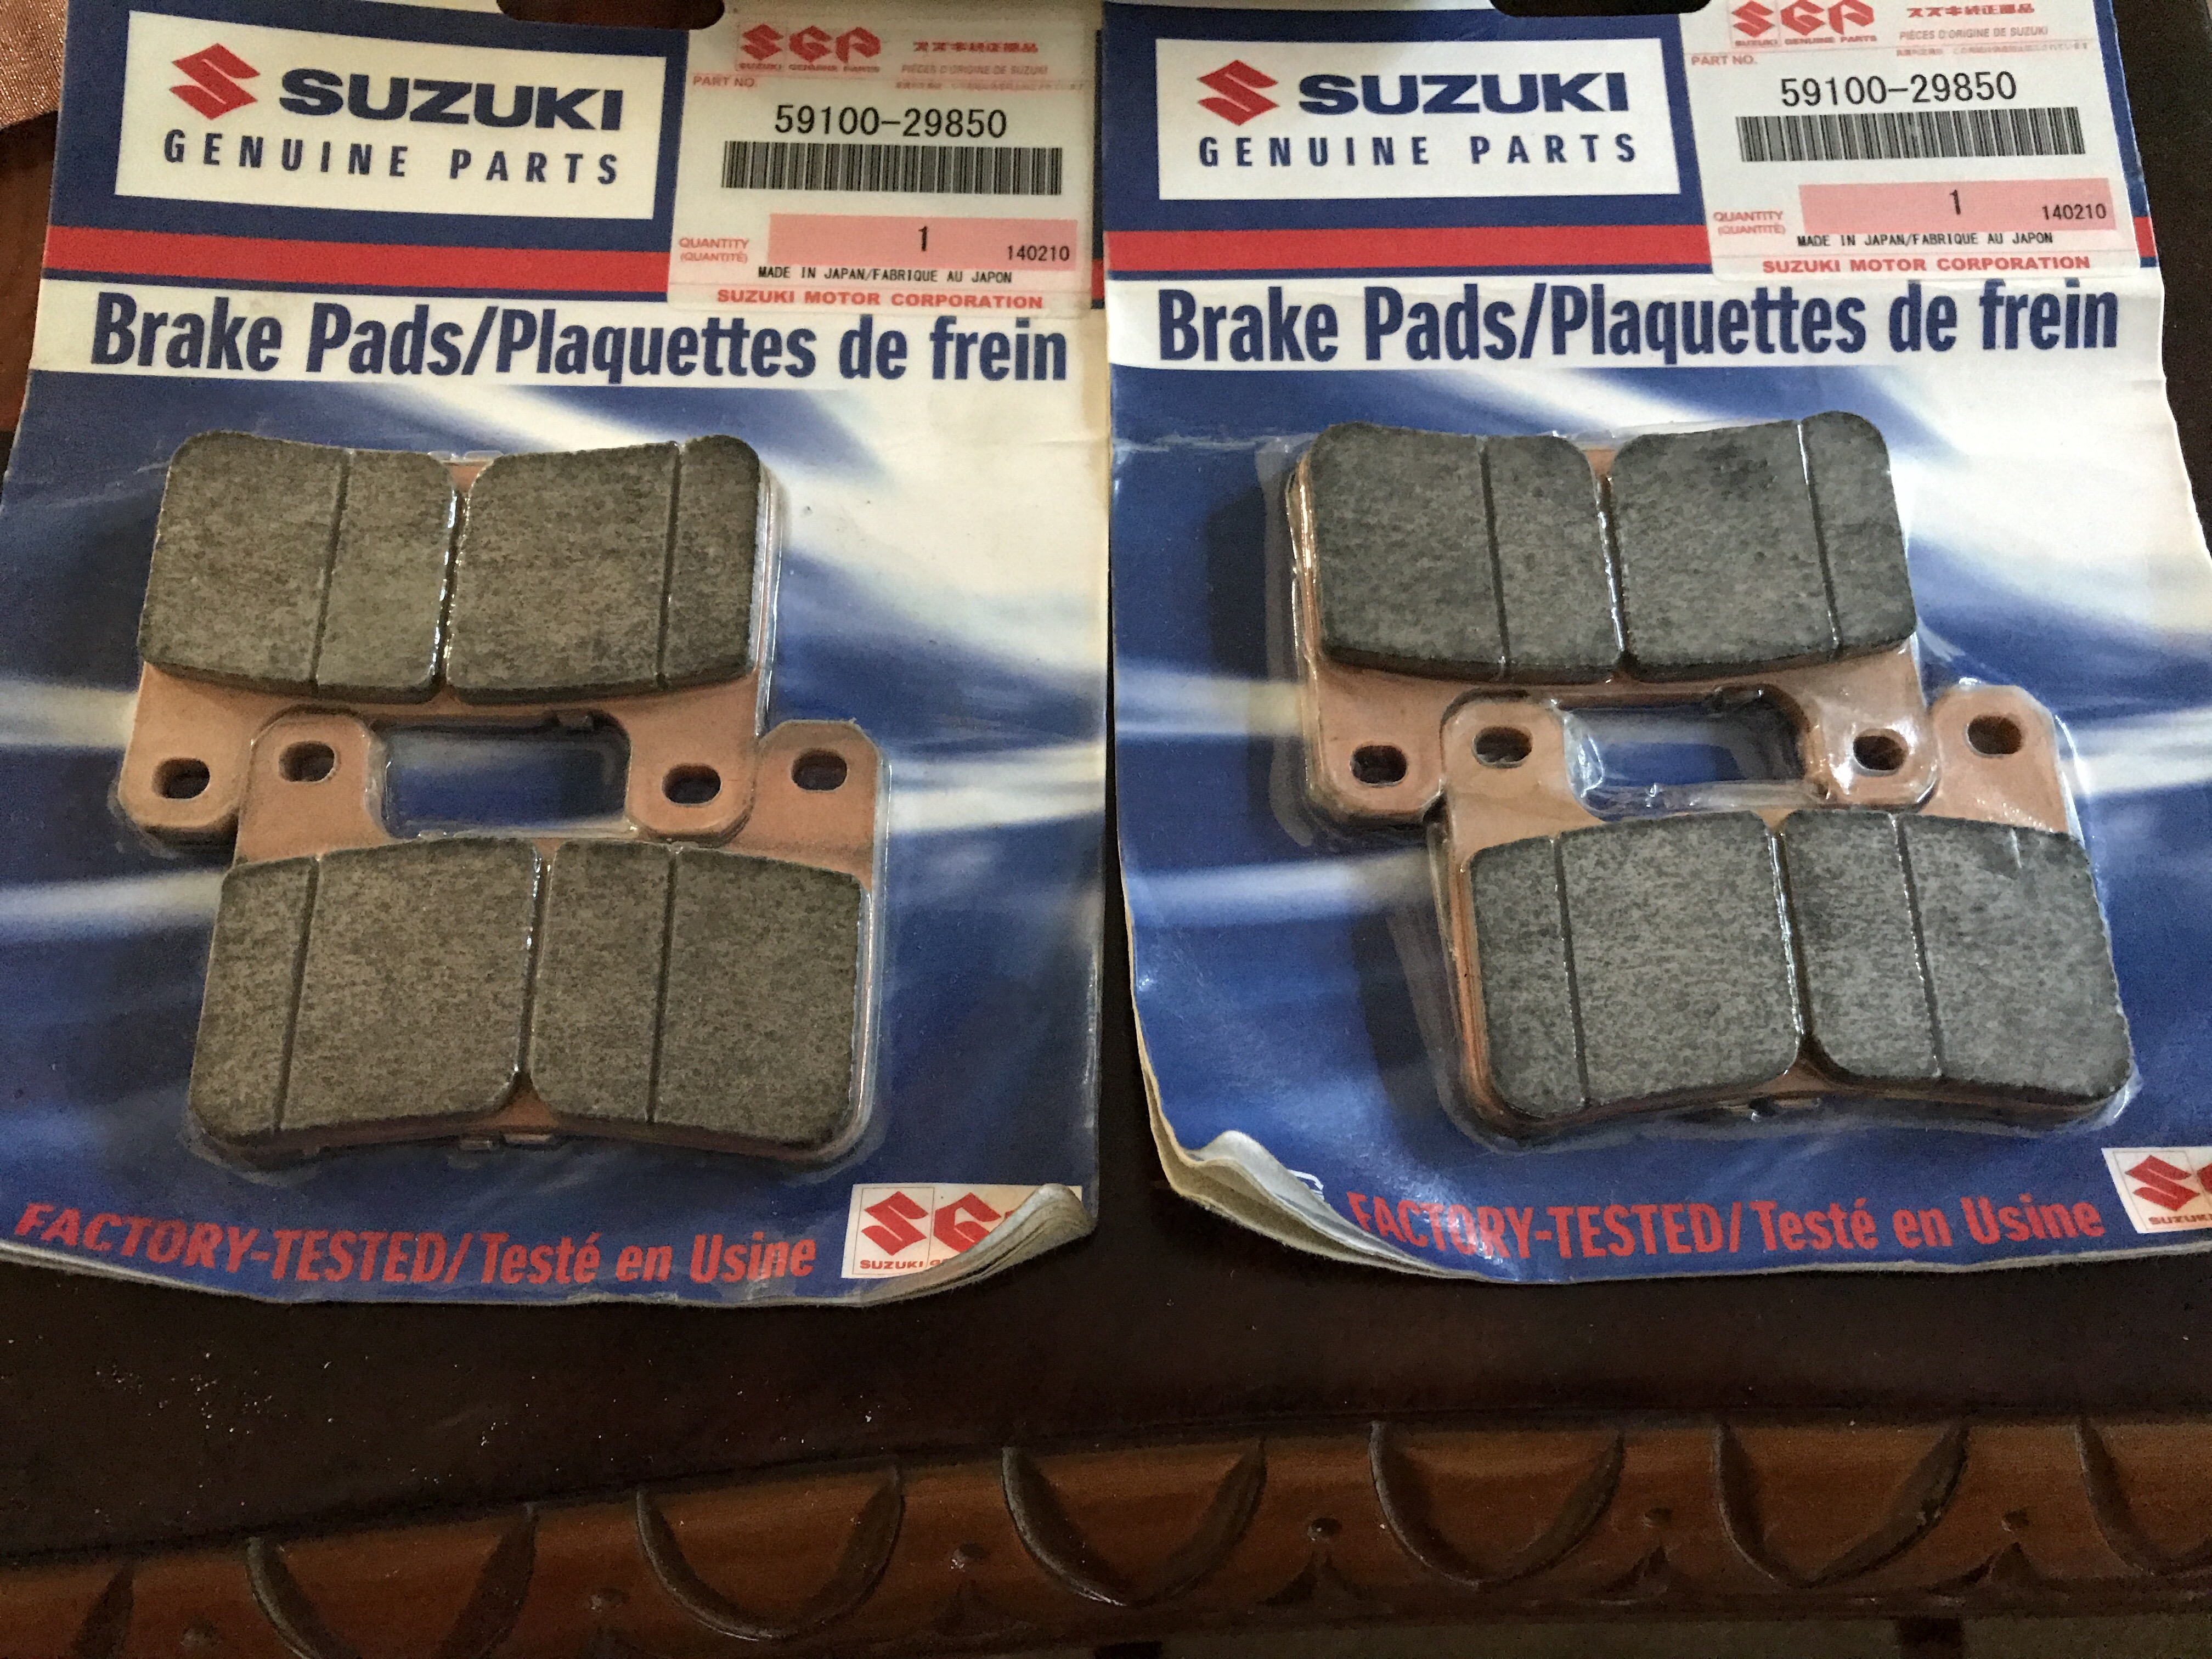 FOR SALE - NEW Suzuki M109R front Brake Pads - Suzuki